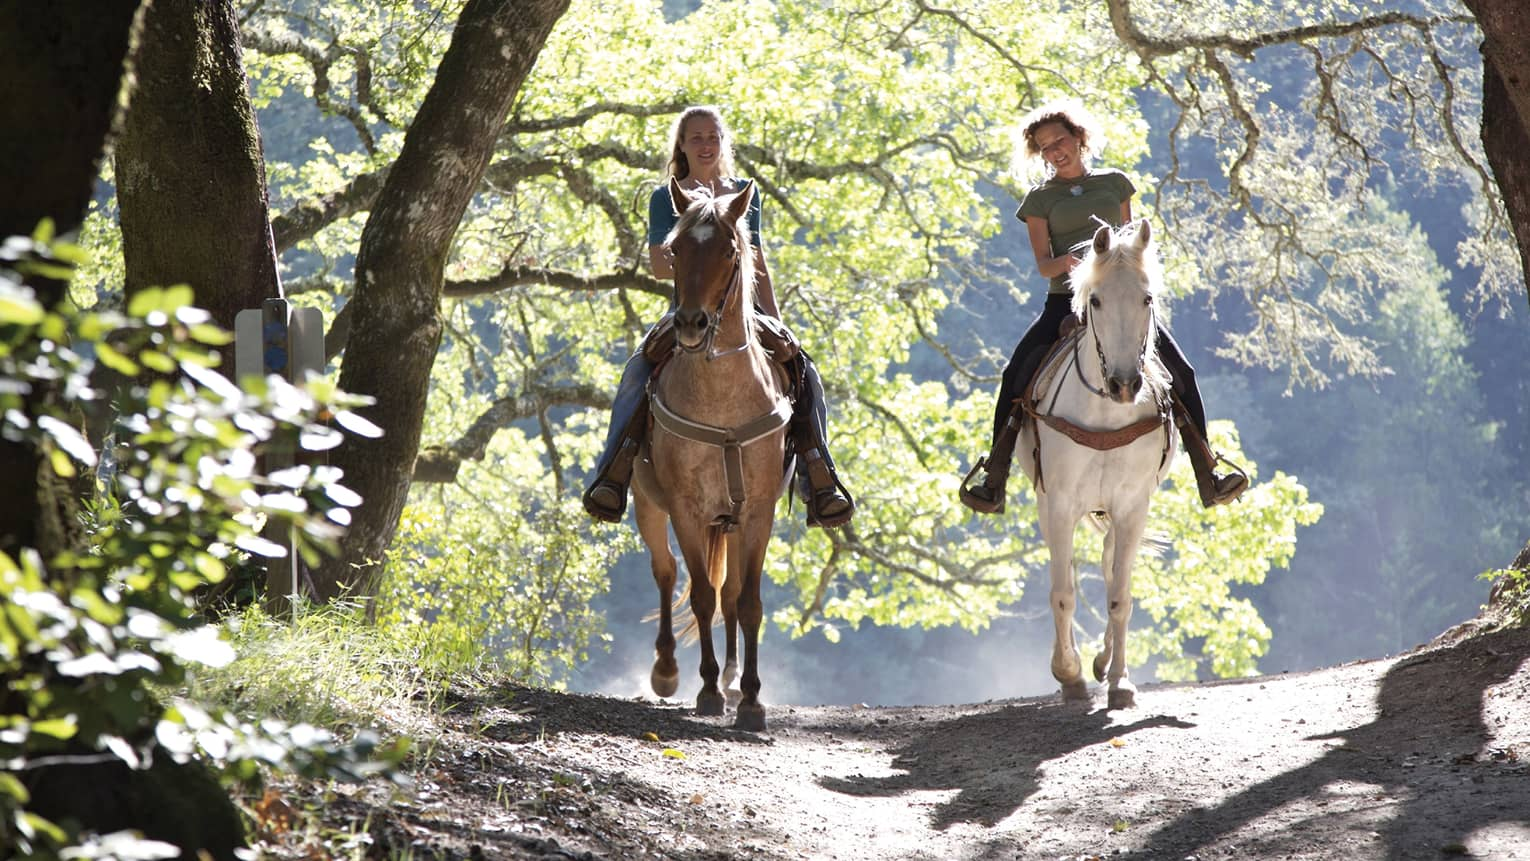 Two smiling women horseback riding on sunny path, one on brown horse and one on white horse